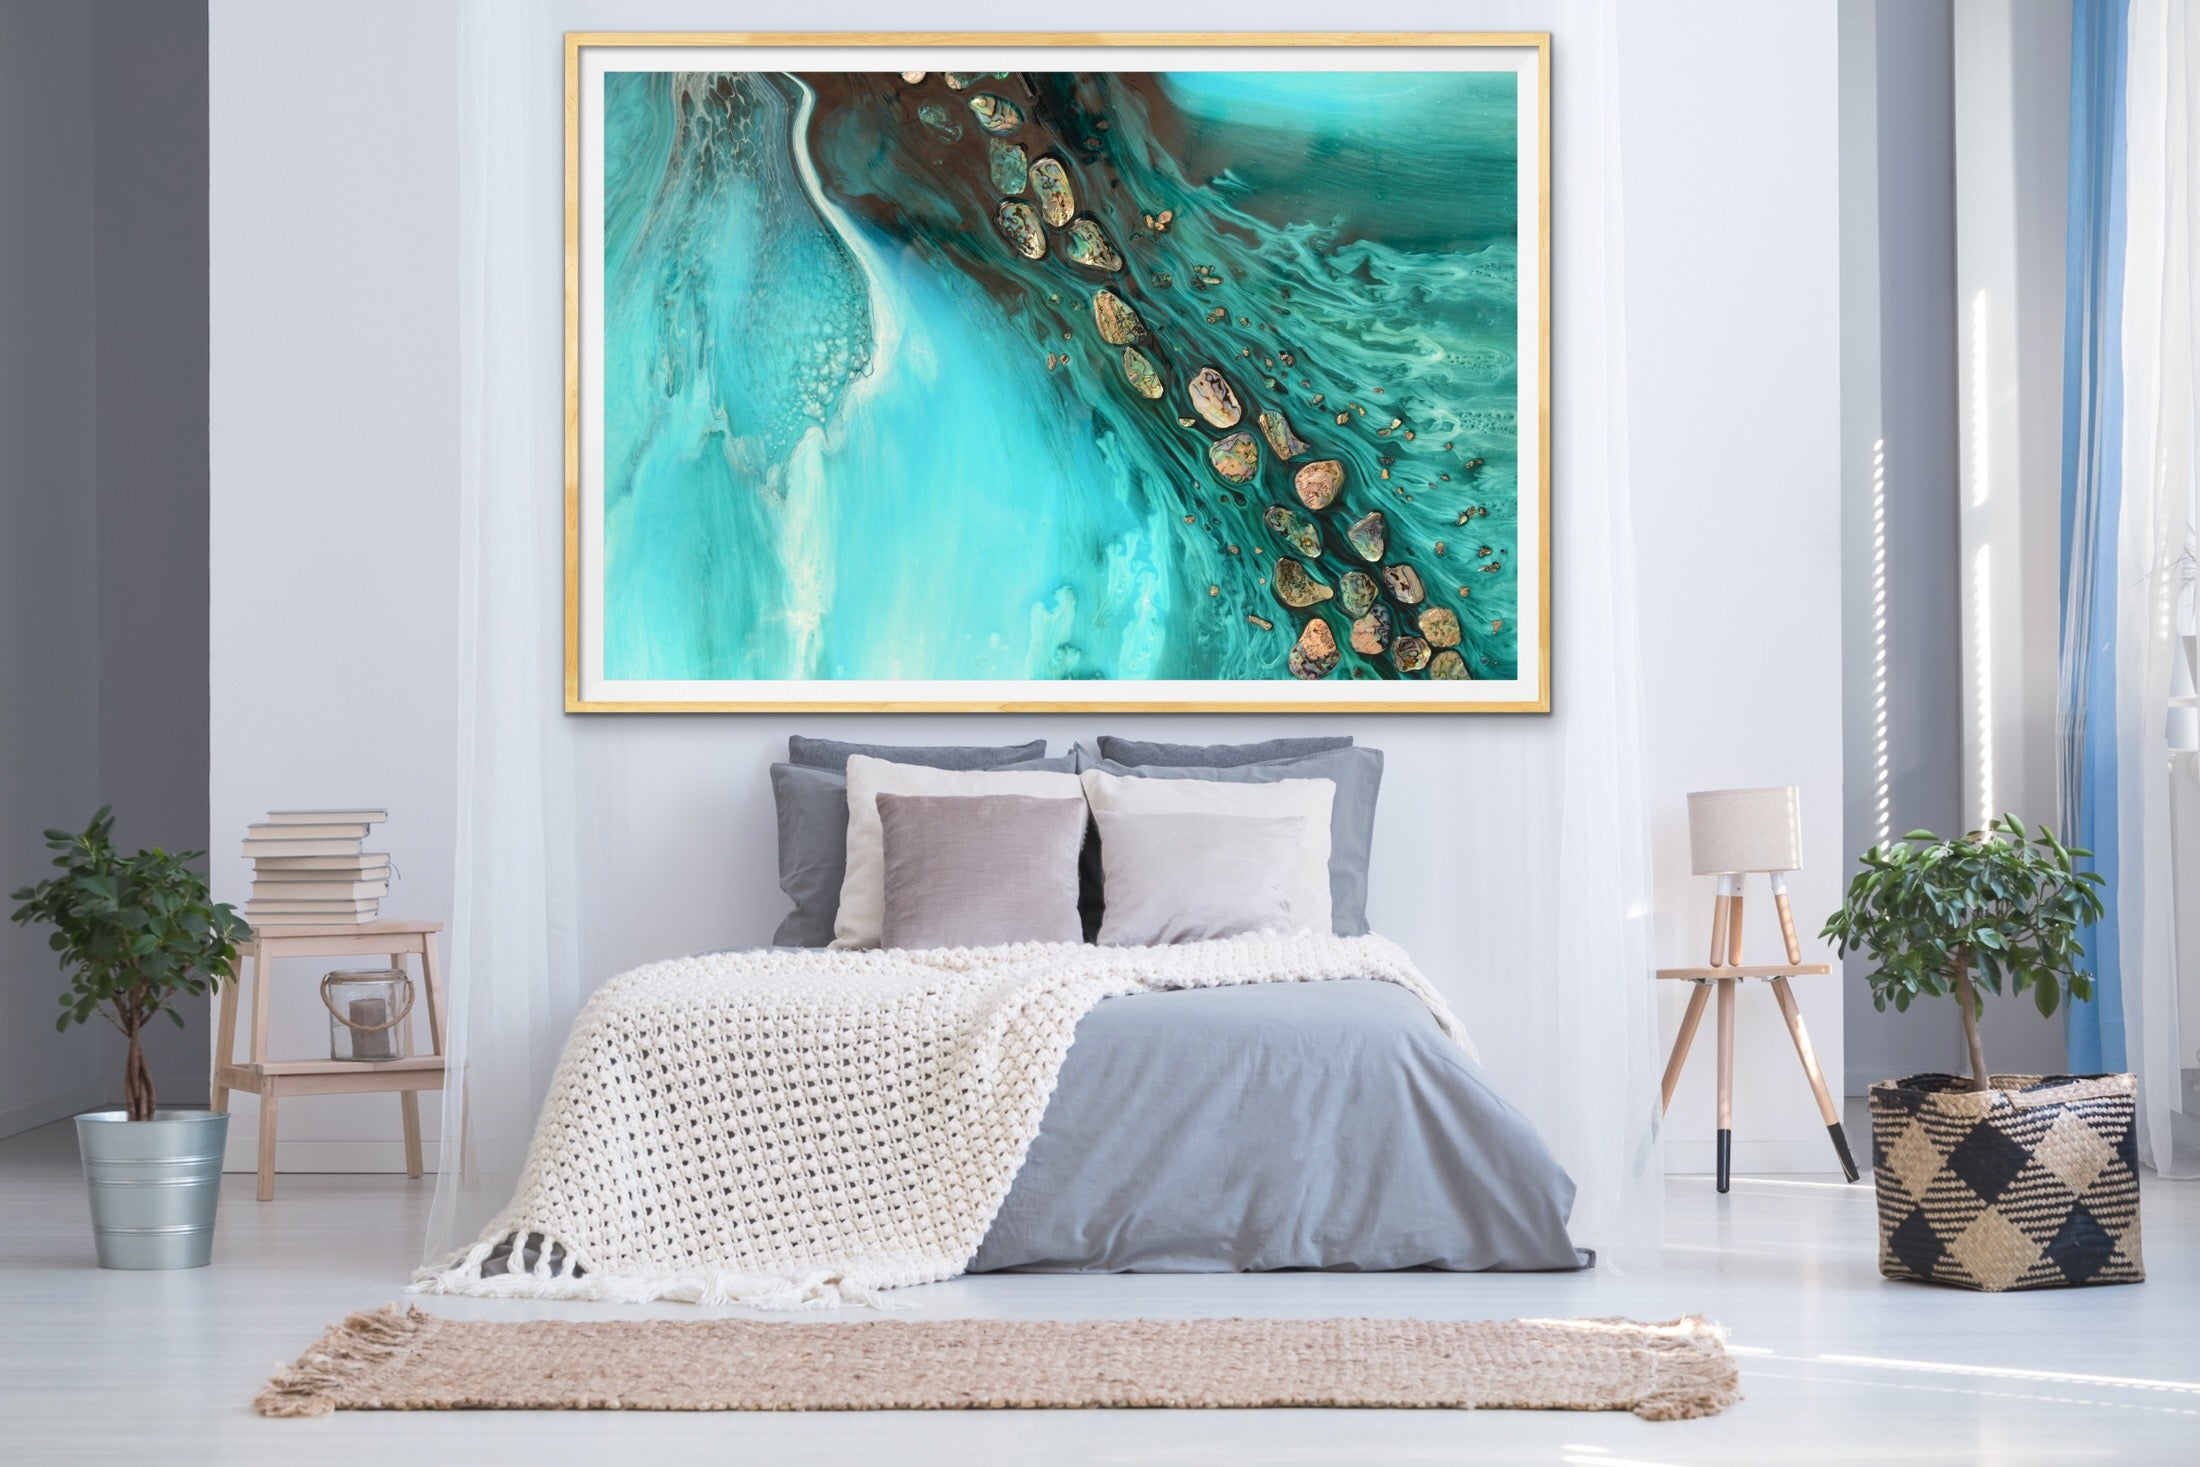 Abstract Ocean. Teal & Aqua. Rise Above Tide 3. Art Print. Antuanelle 2 Artwork. Limited Edition Print